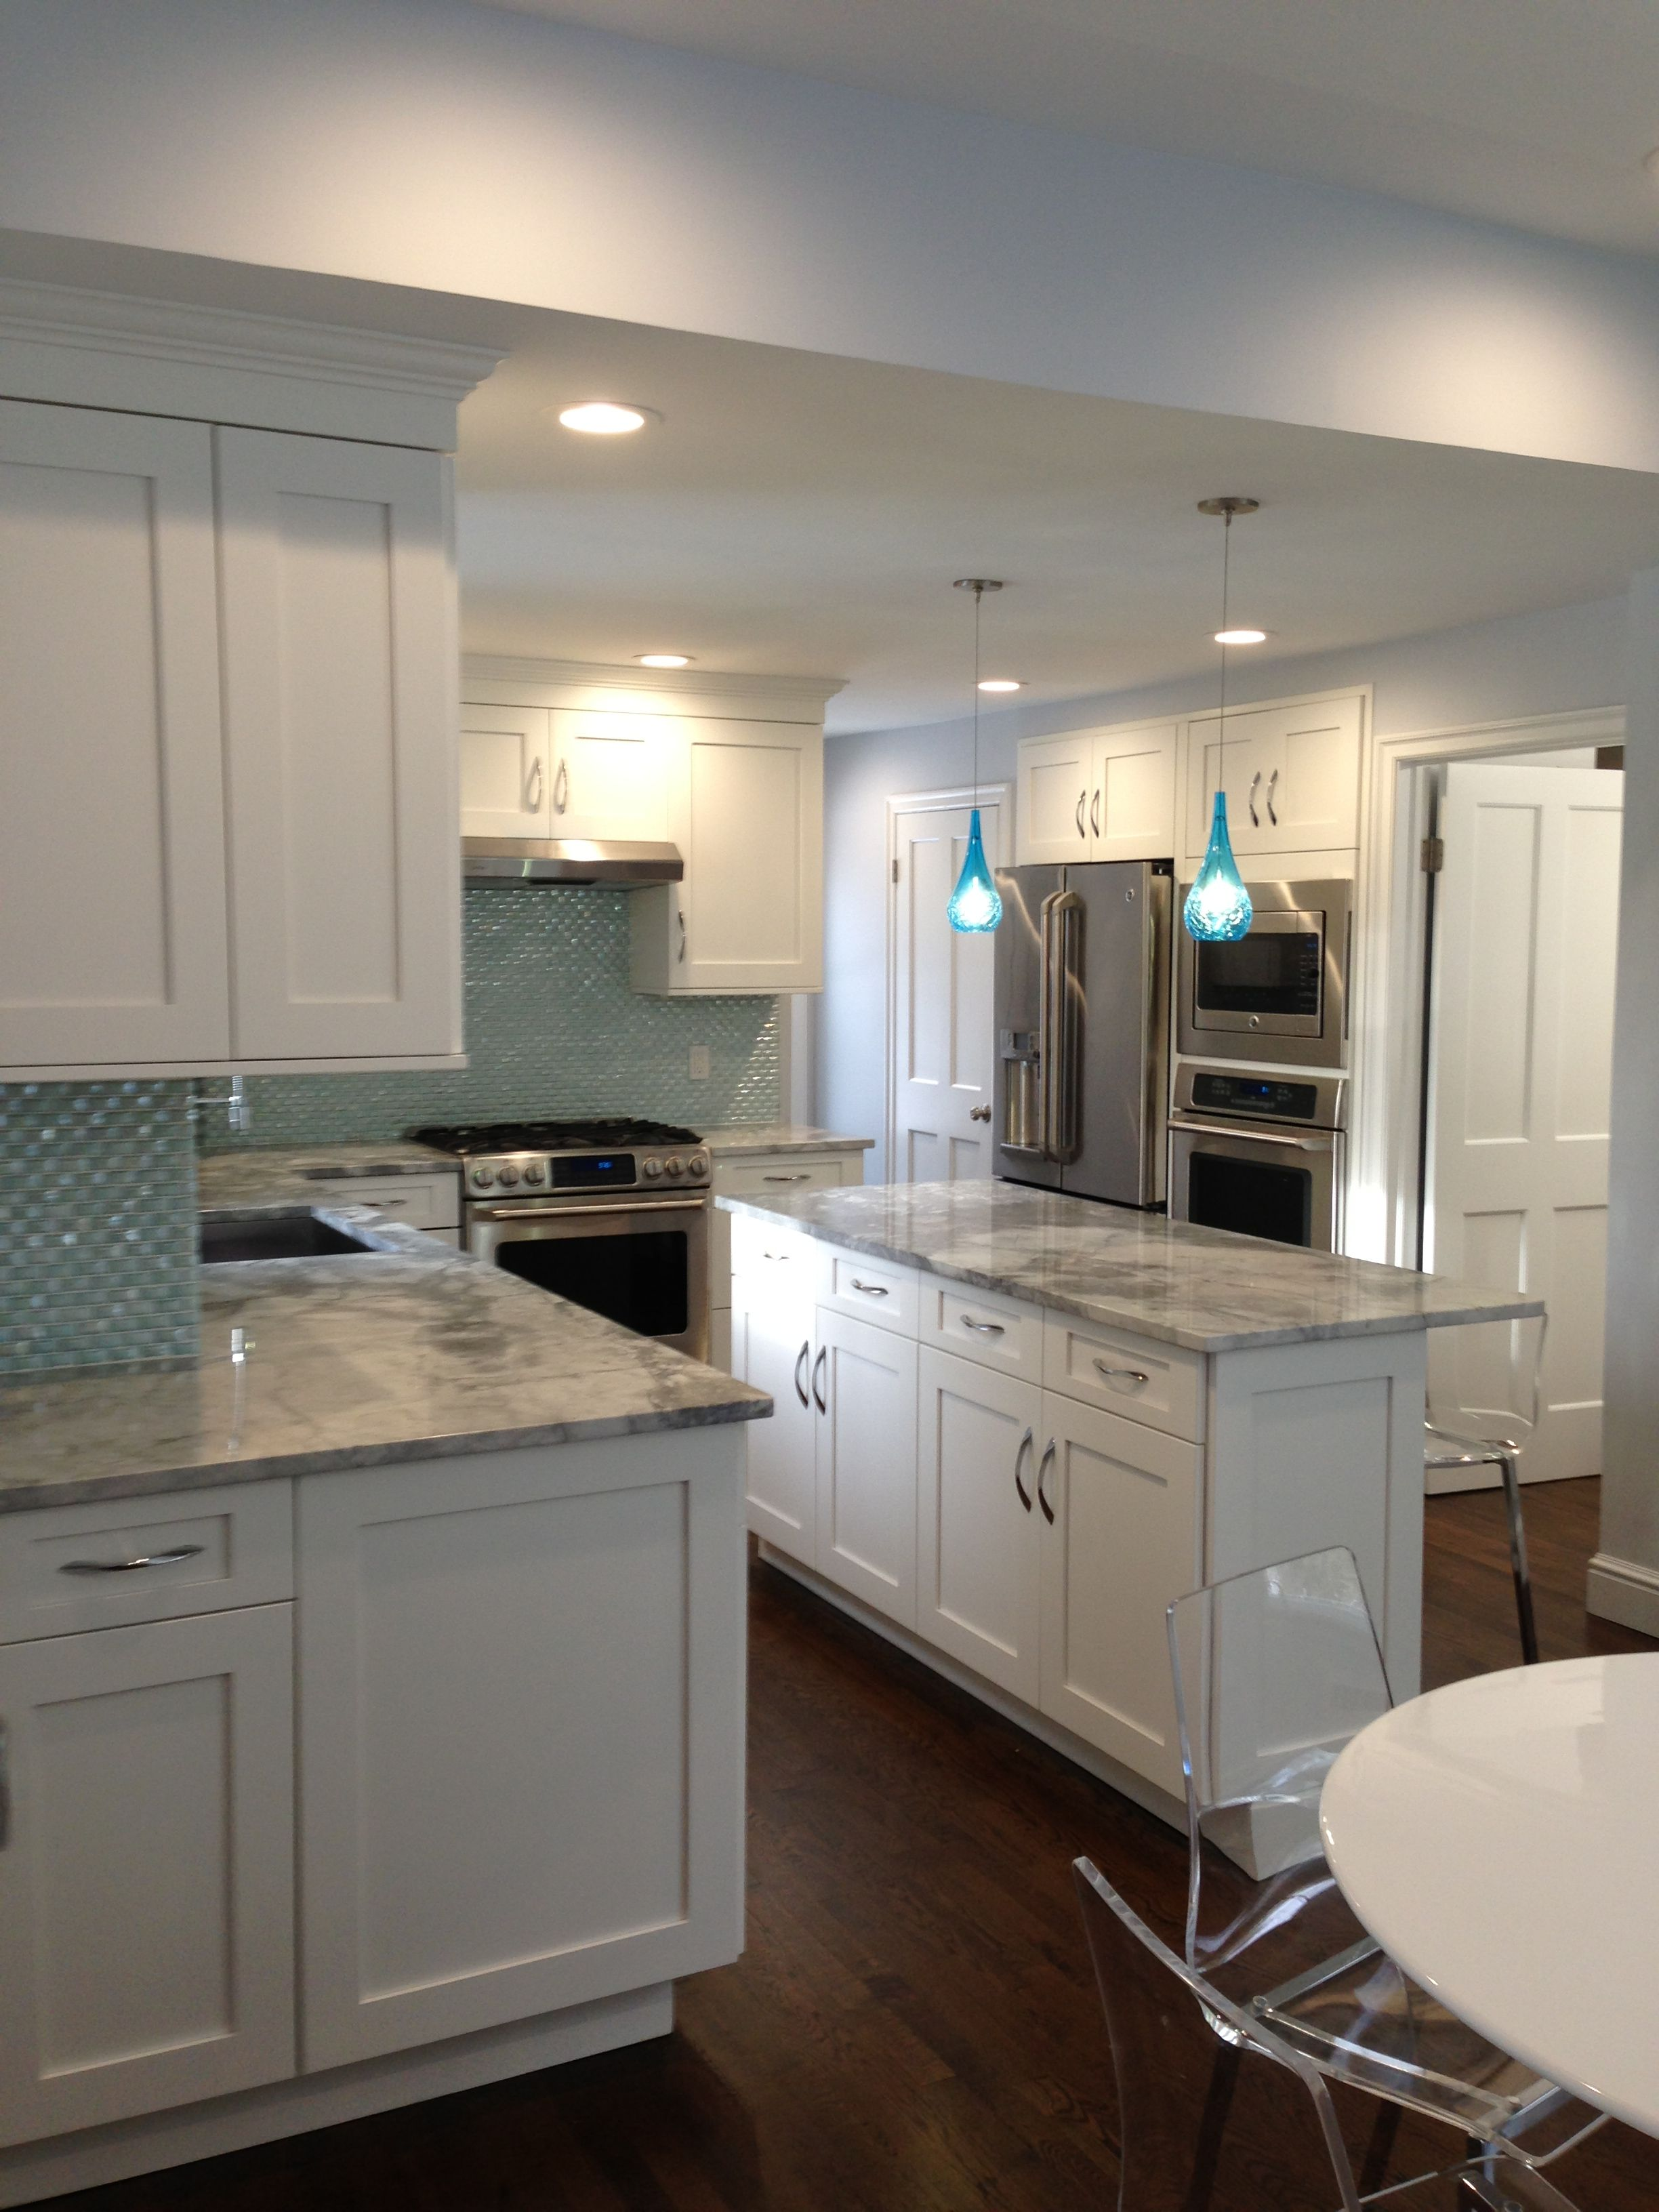 This Beautiful Kitchen Was Recently Remodeled By Majestic Kitchens And Bath Designer Maria Tanzi